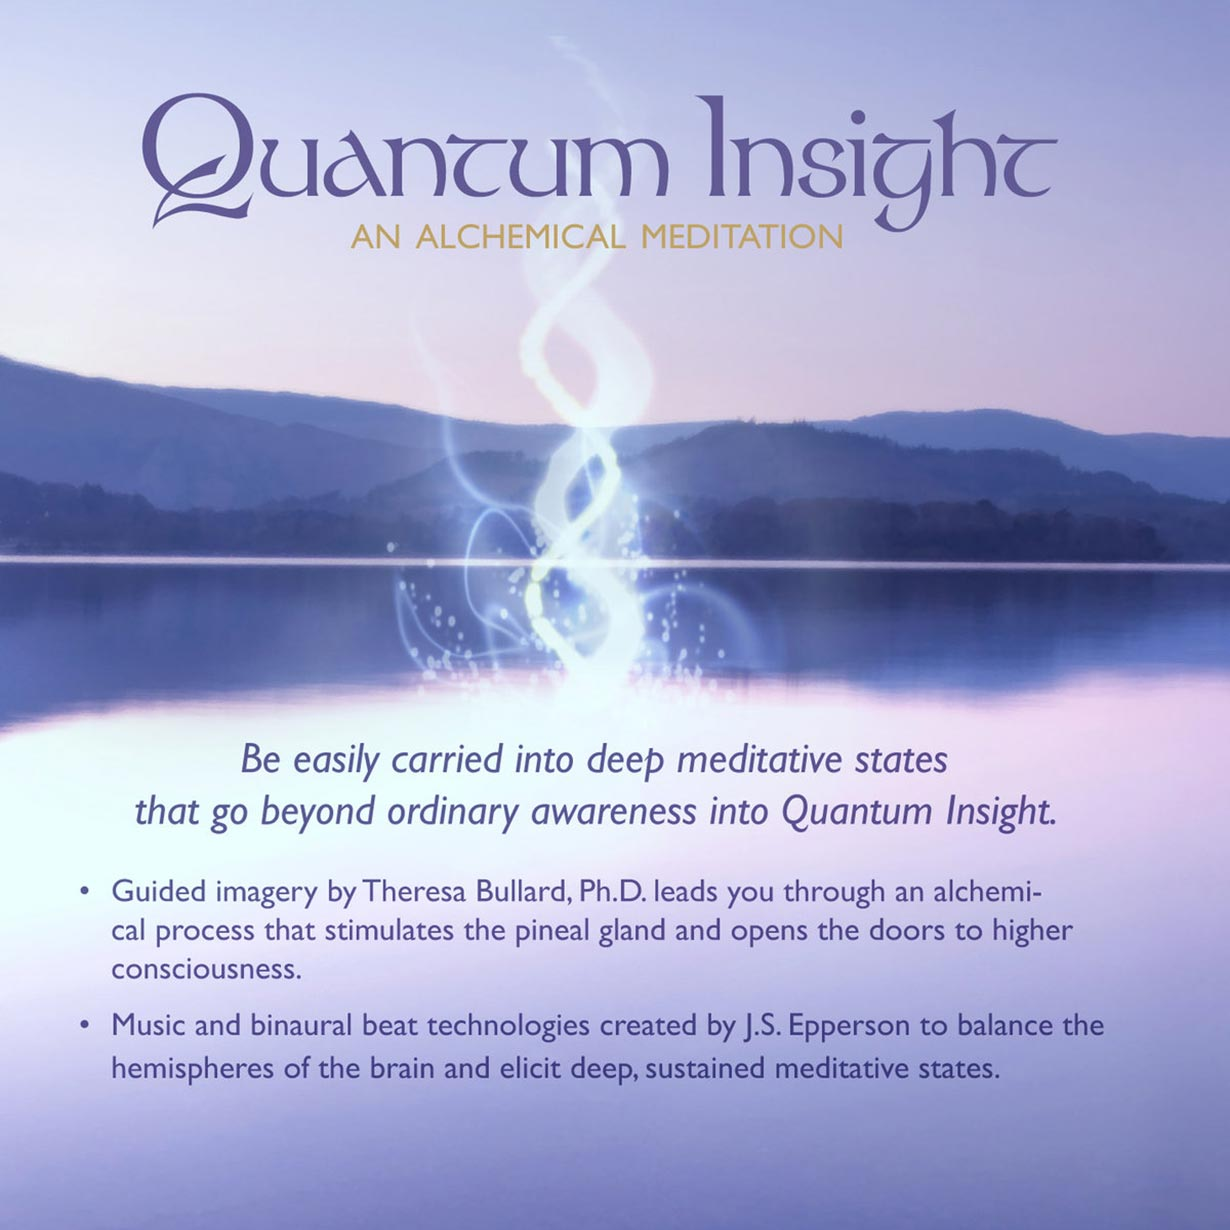 Quantum Insight - An Alchemical Meditation